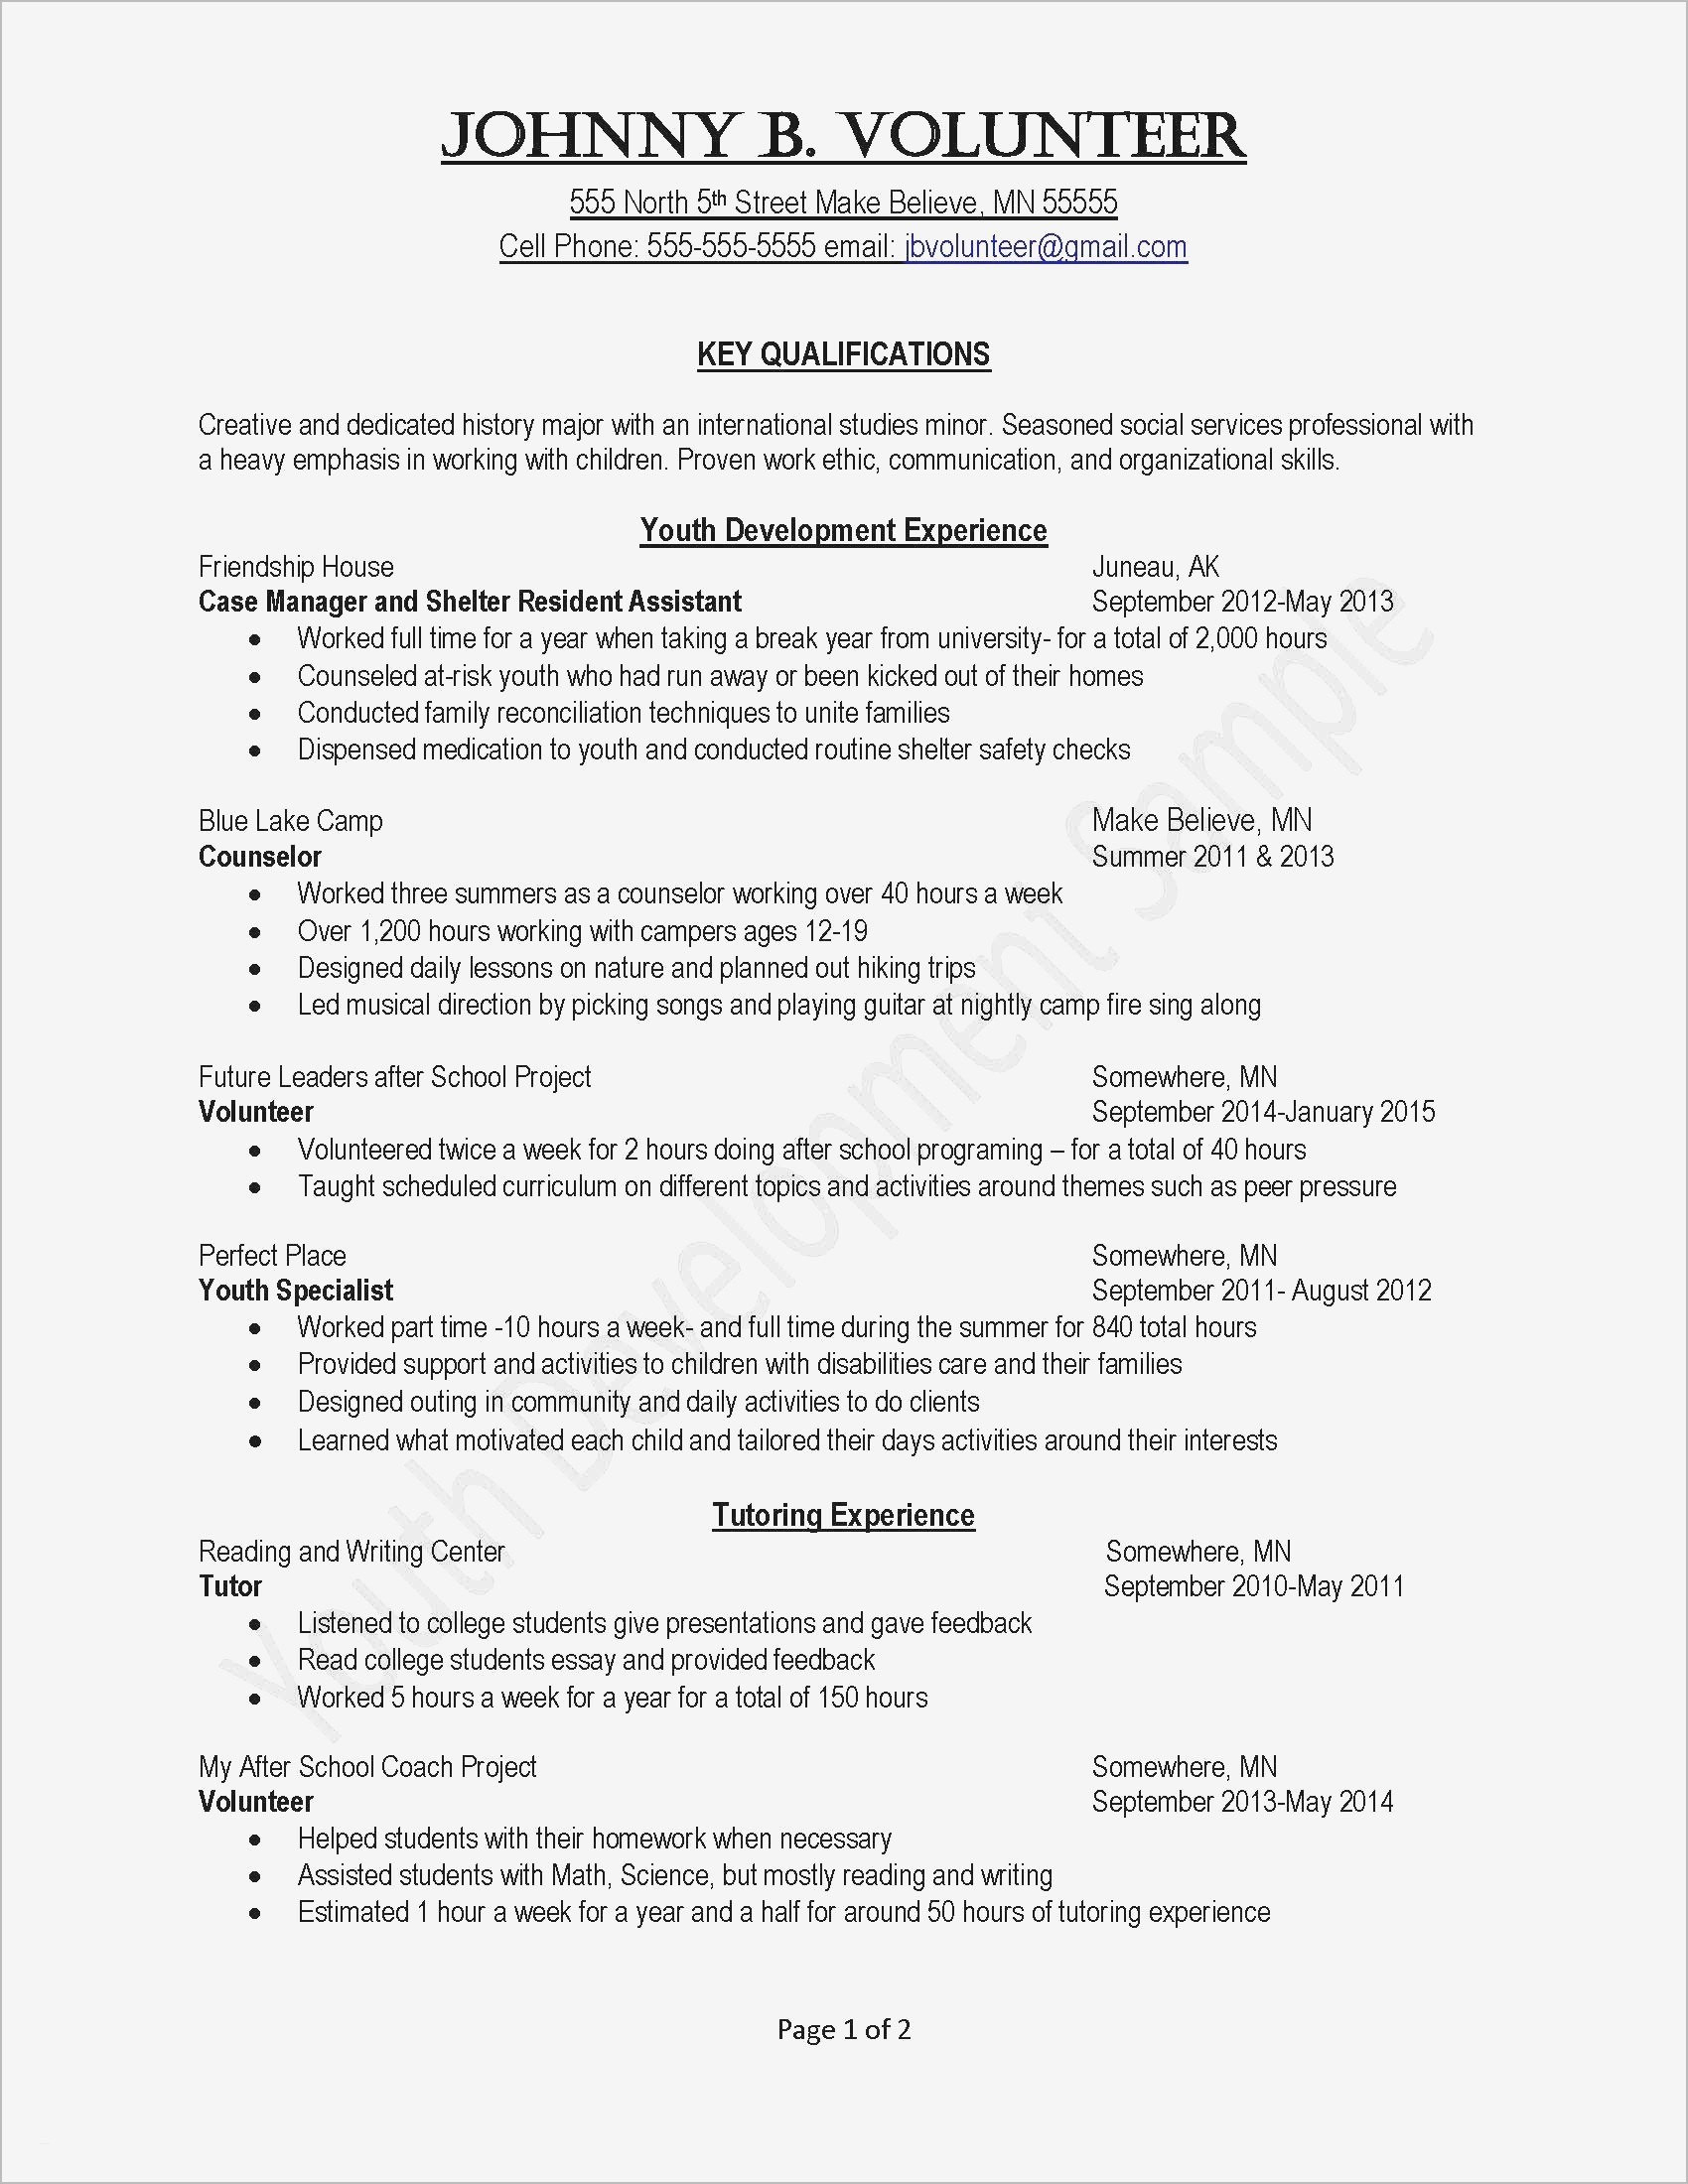 Free Introduction Letter Template - Resume Template Line Free Fresh Job Fer Letter Template Us Copy Od